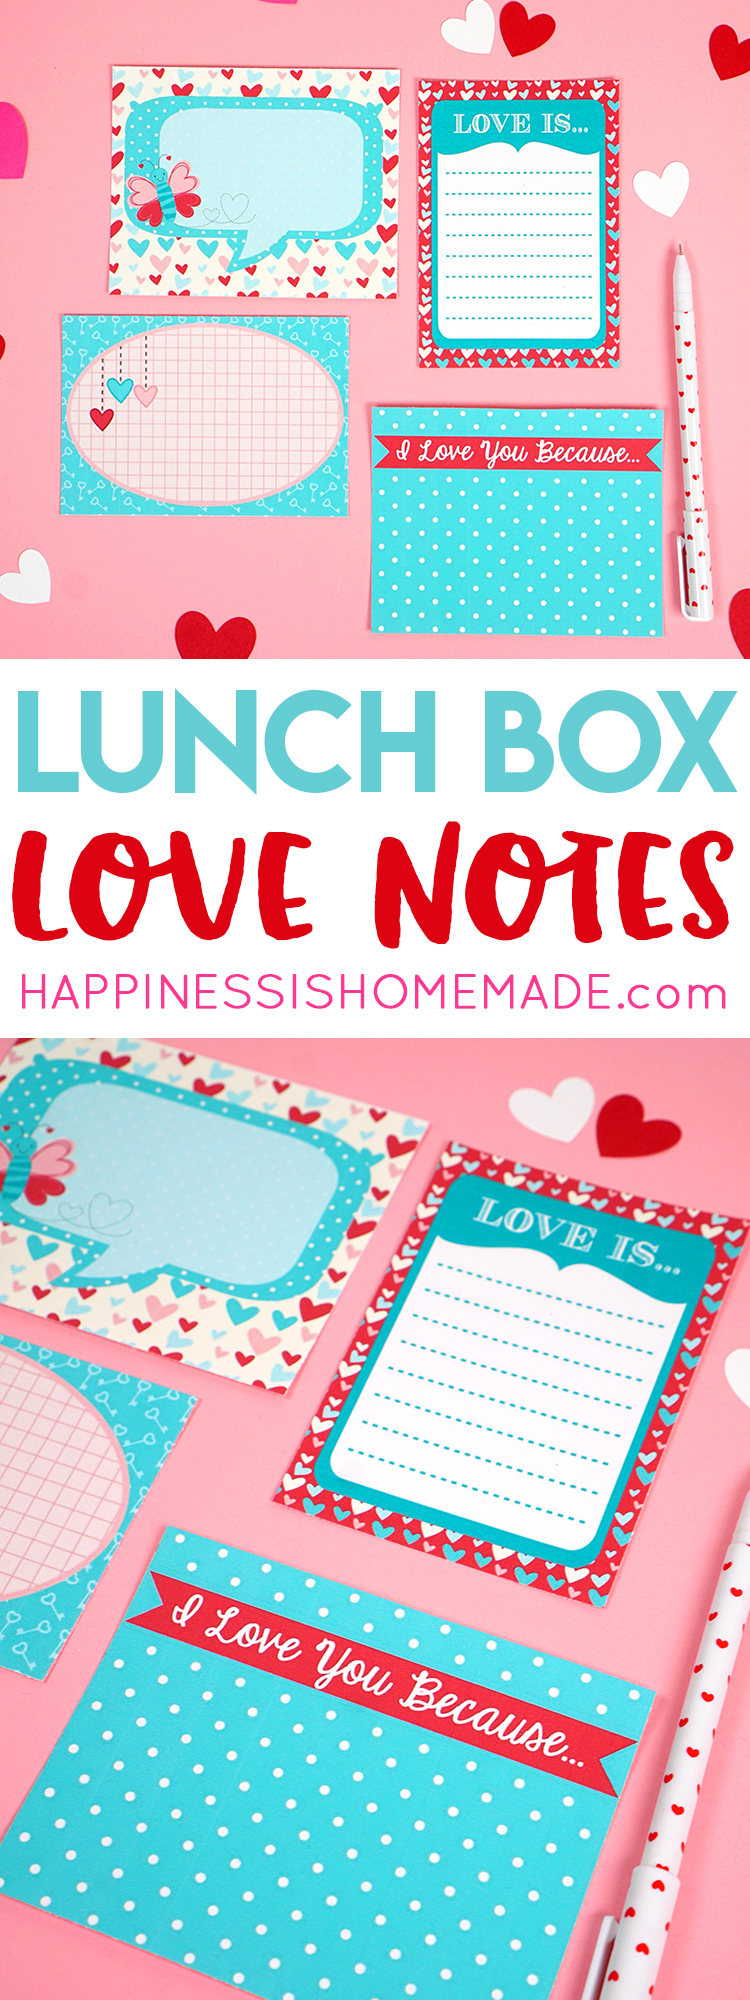 Printable love notes are perfect for Valentine's Day or any day of the year! Slip them into lunch boxes, purses, pockets, or backpacks for a sweet reminder of your love!